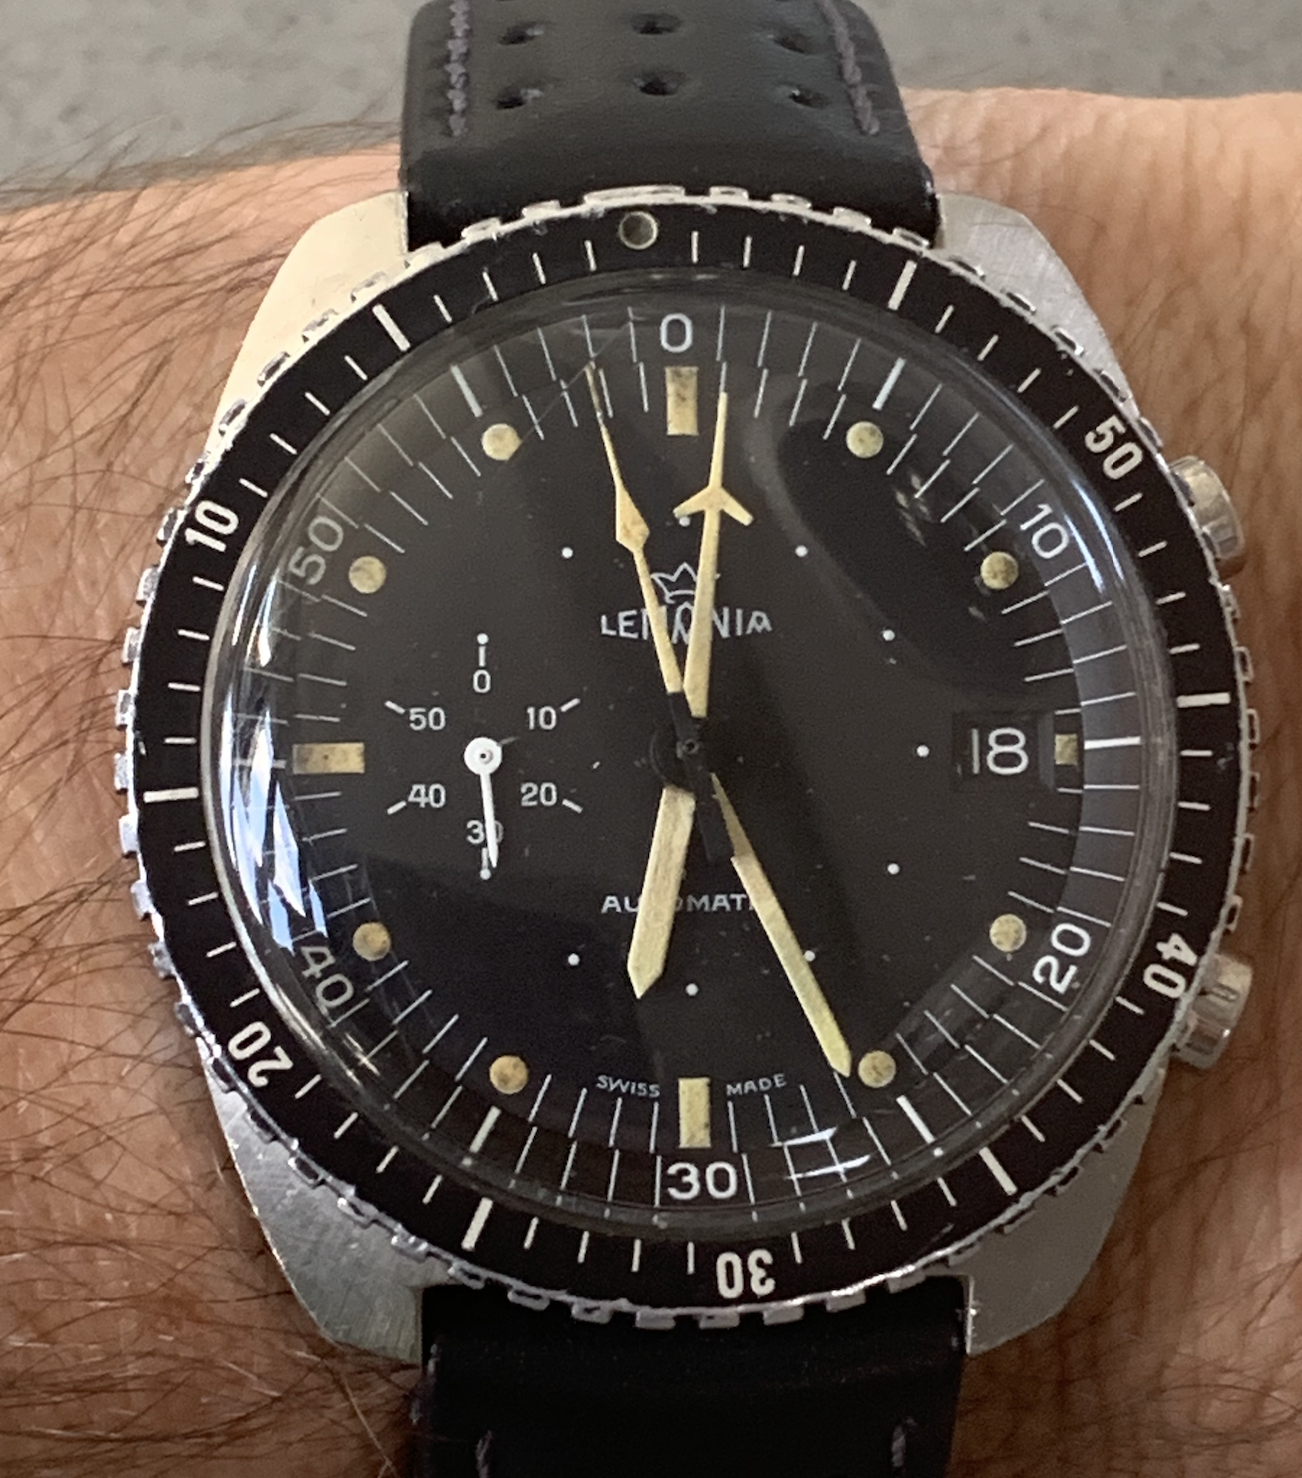 Looking to buy Lemania watches in ANY condition, working or not, any age, any condition. I will beat ANY price offered for these watches and will pay immediate cash.